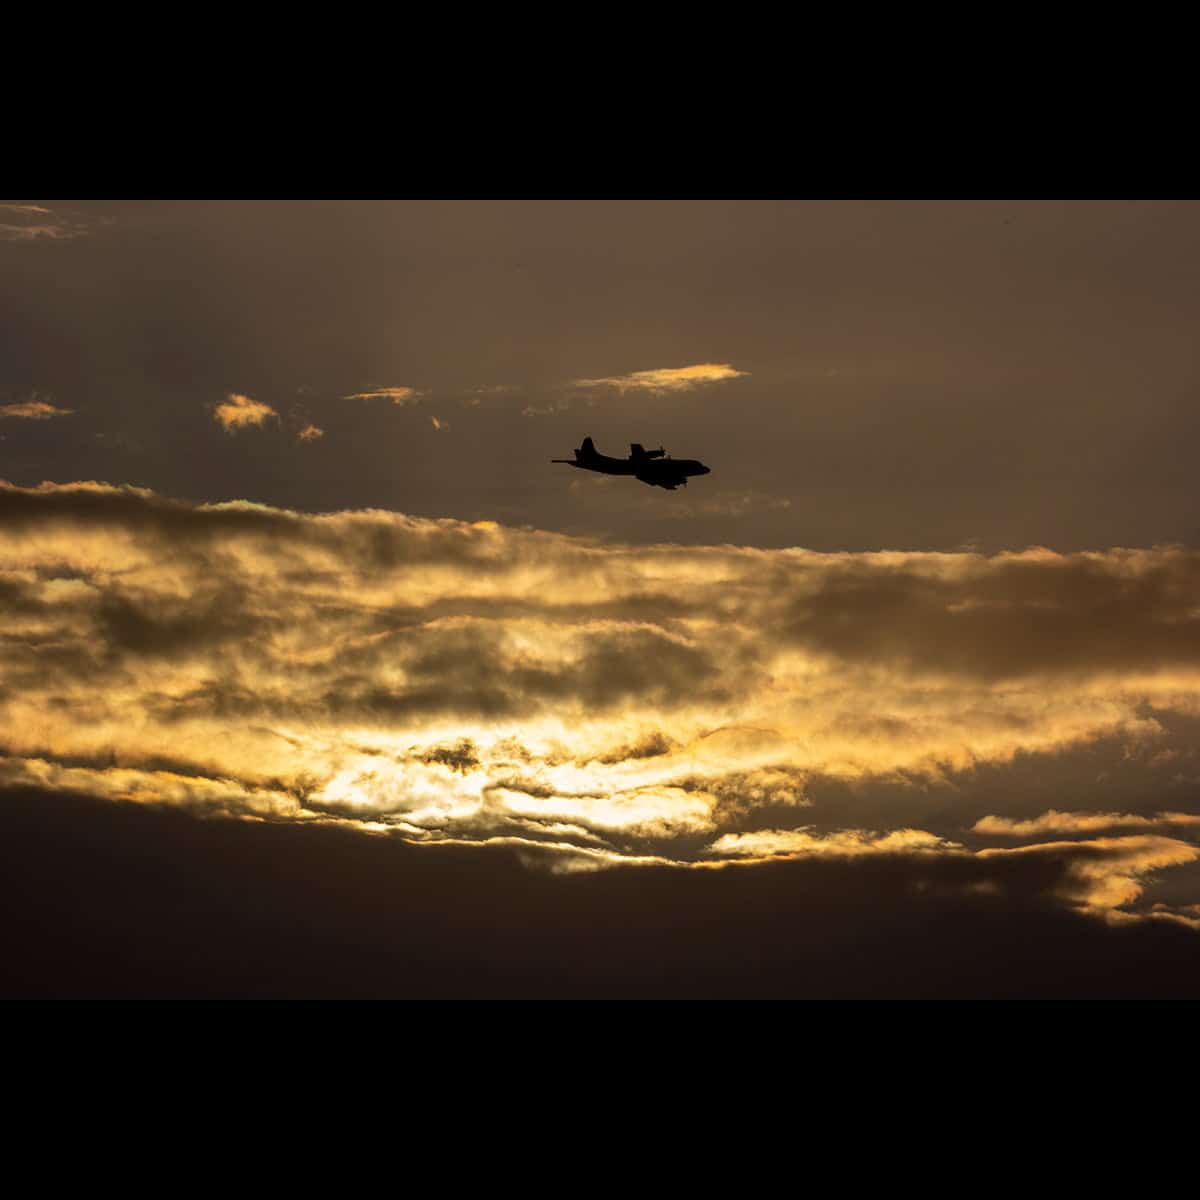 P-3 Orion flying over clouds photo.